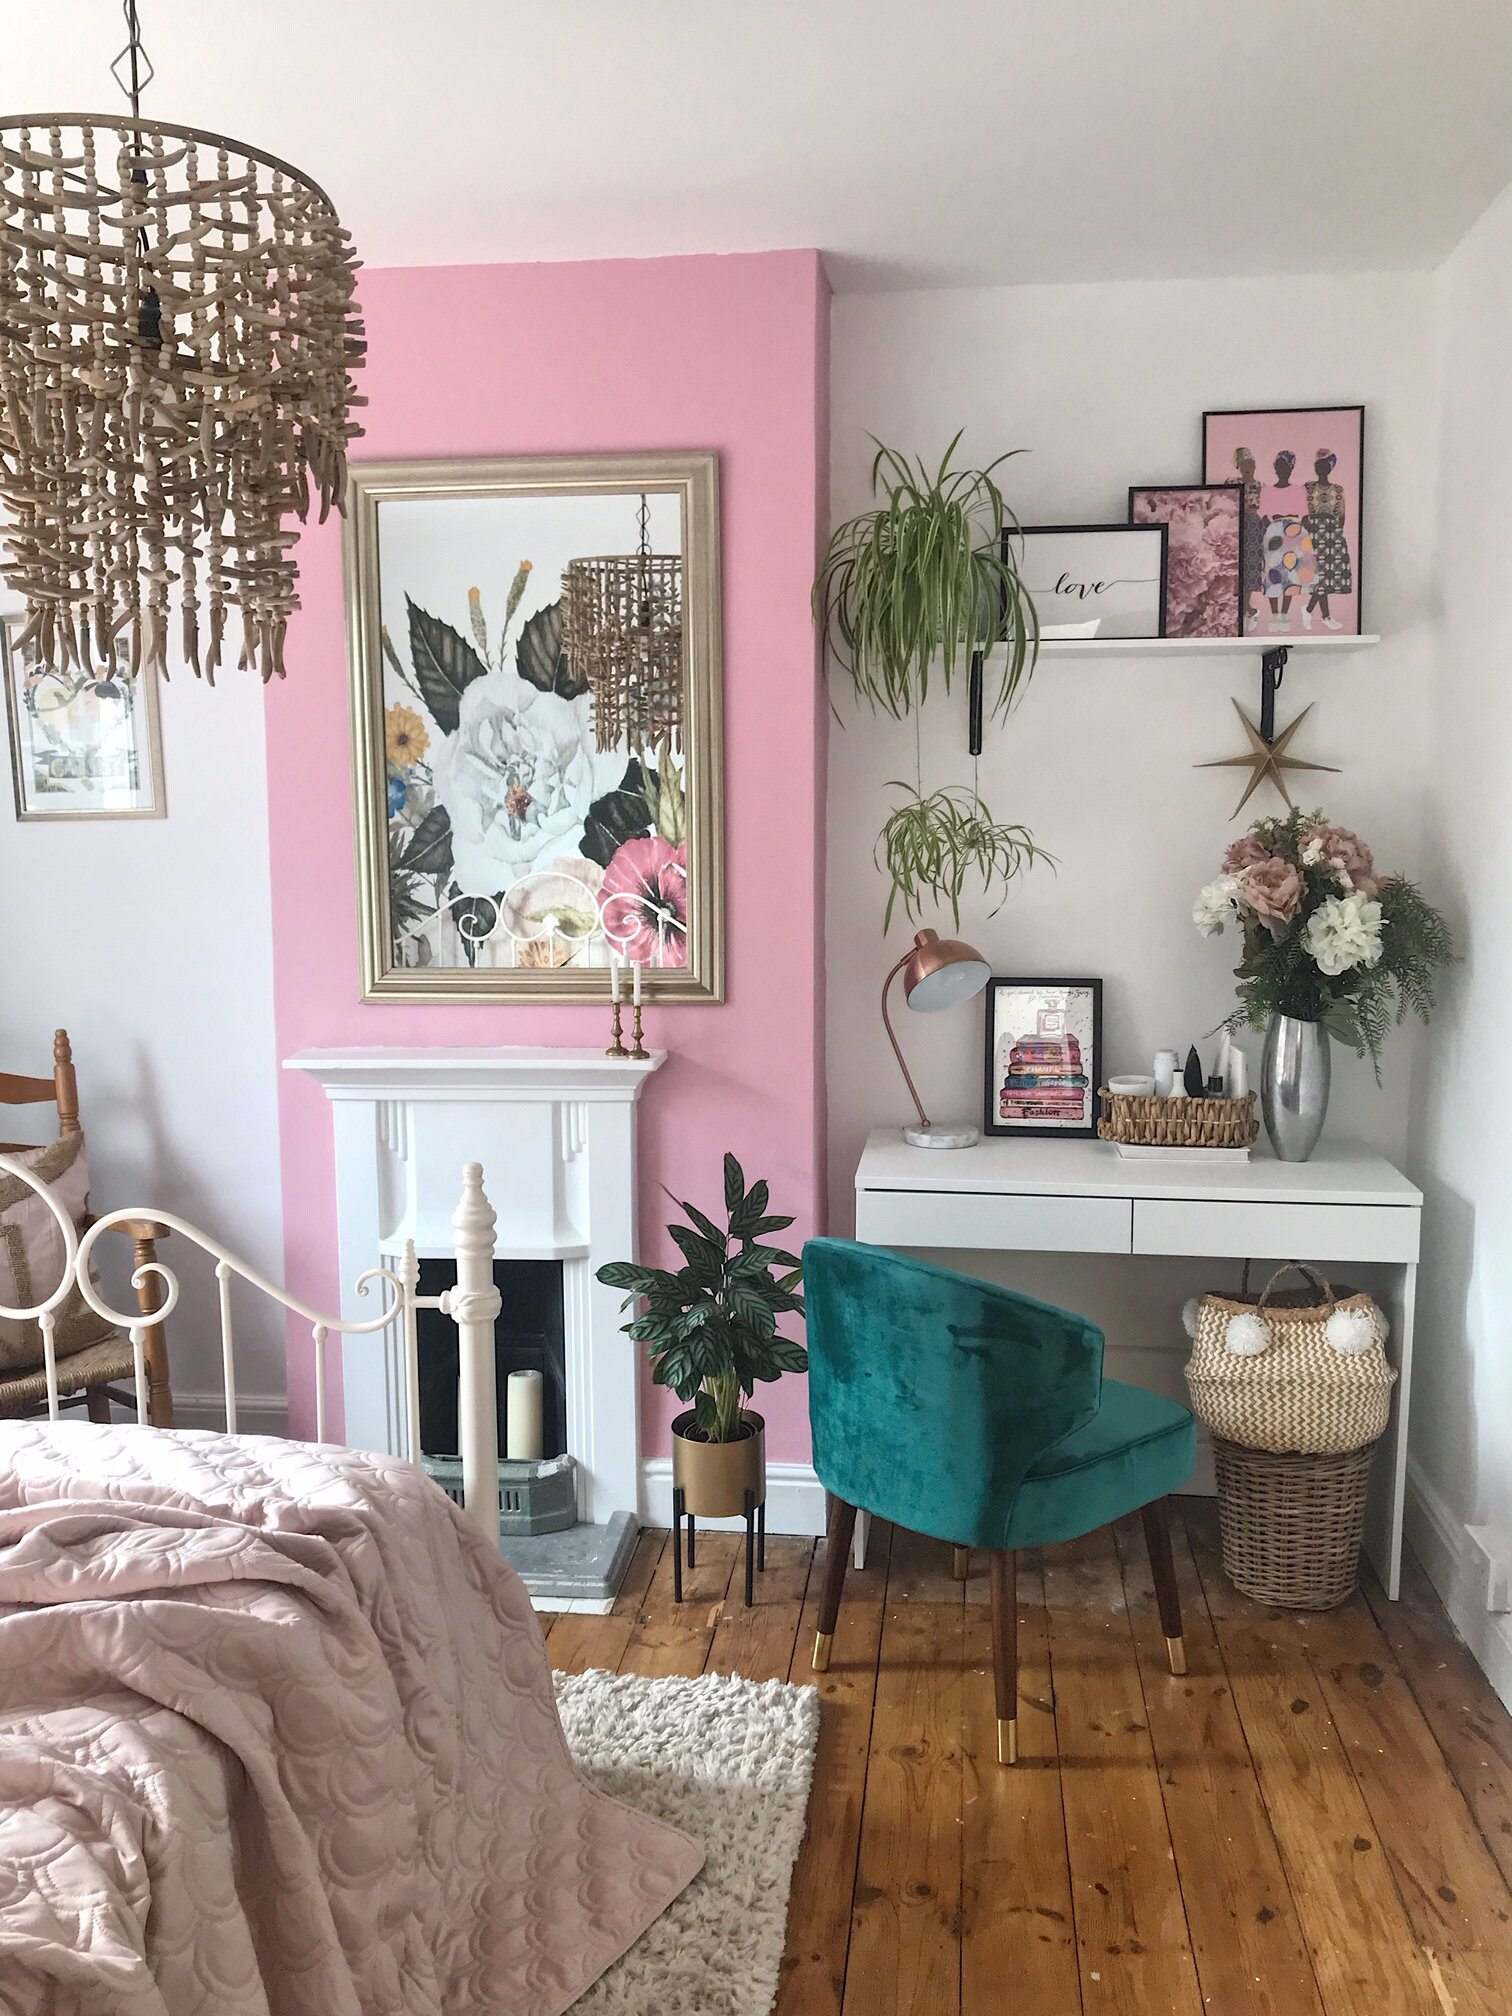 The room feels fresher and brighter thanks to the  Valspar  paint